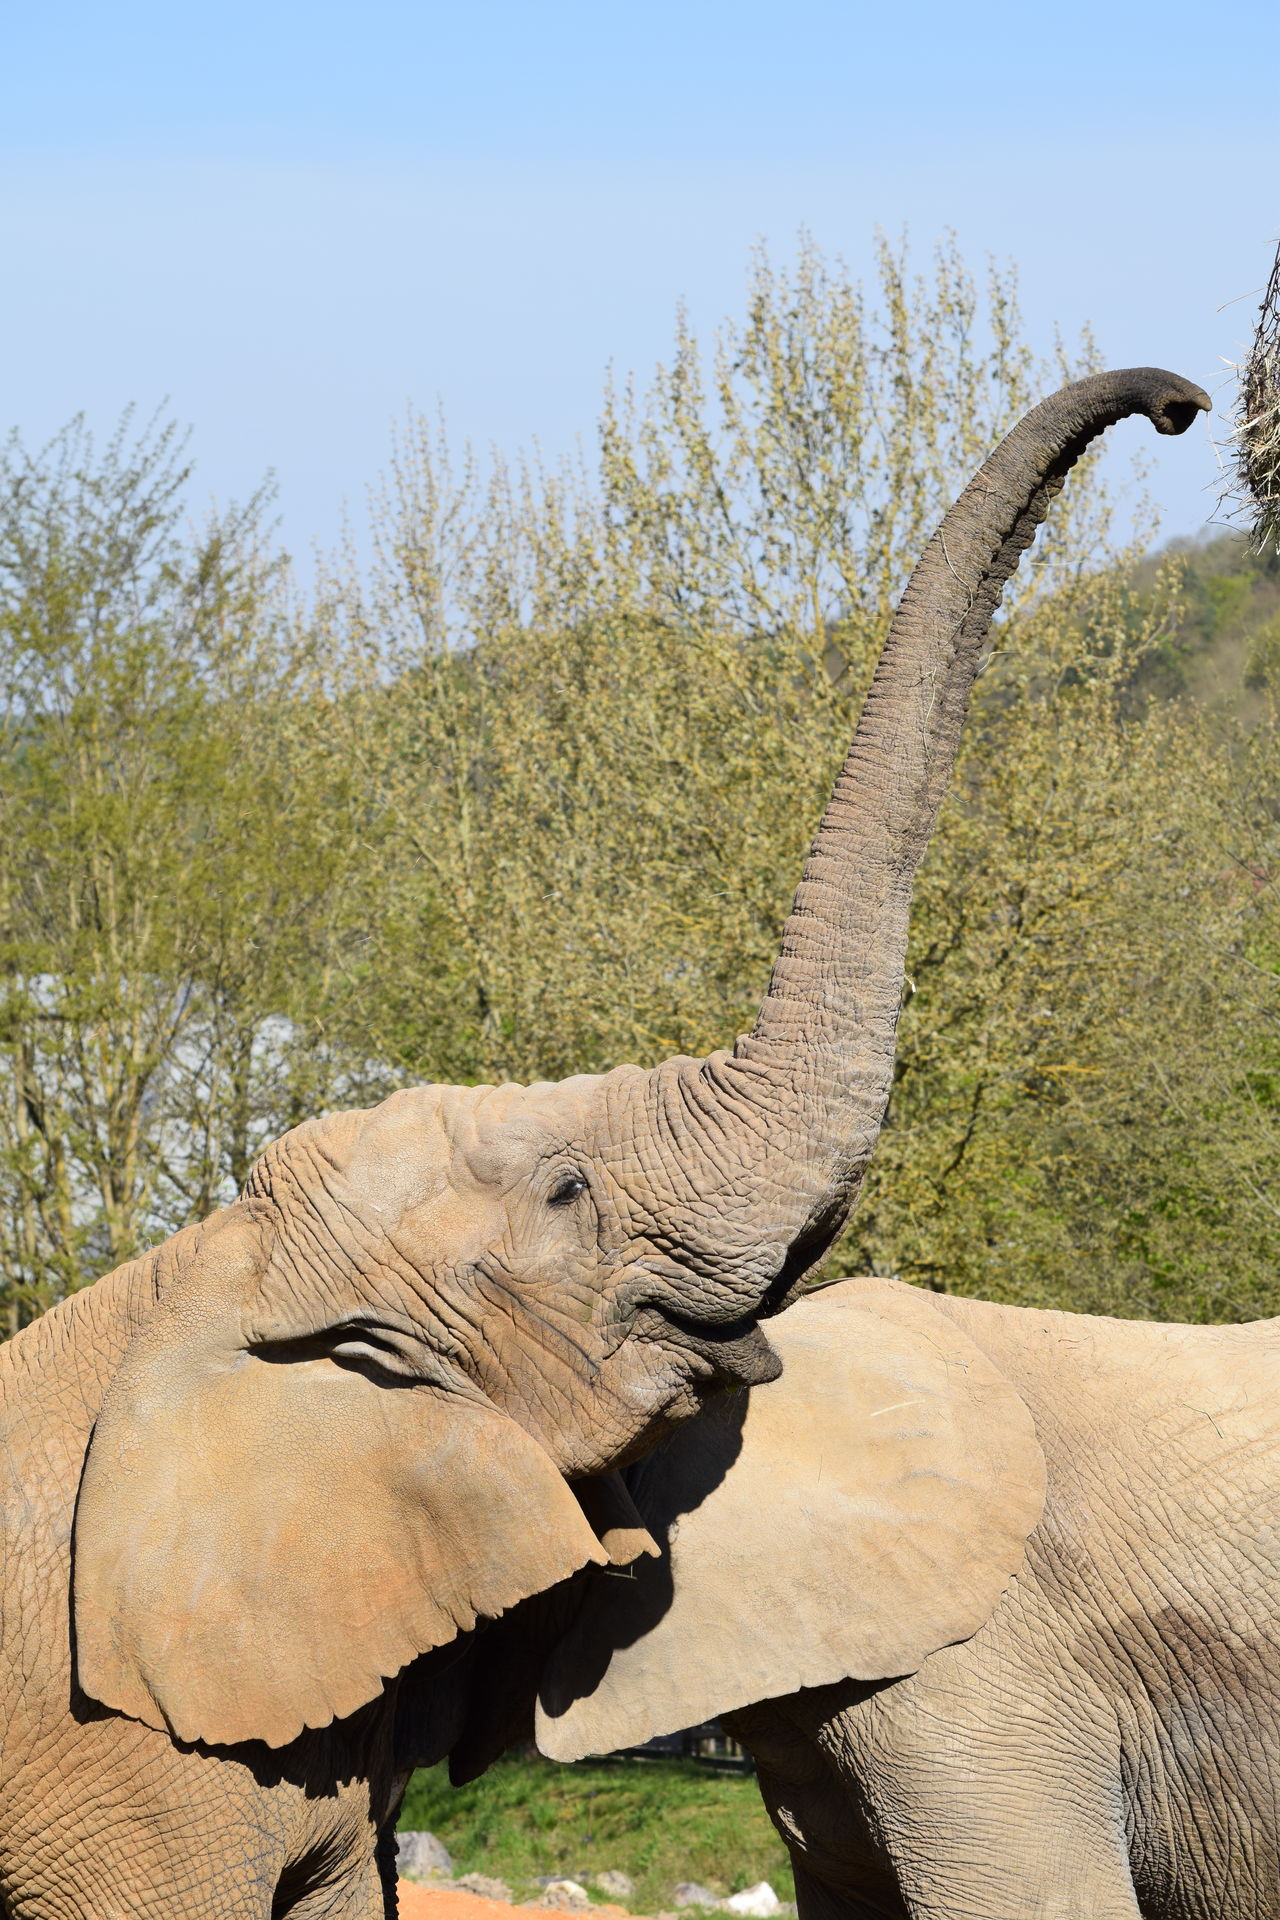 elephant African Elephant Animal Themes Animal Trunk Animal Wildlife Animals In The Wild Beauty In Nature Close-up Day Elephant Mammal Nature No People One Animal Outdoors Safari Animals Side View Sky Tree Tusk